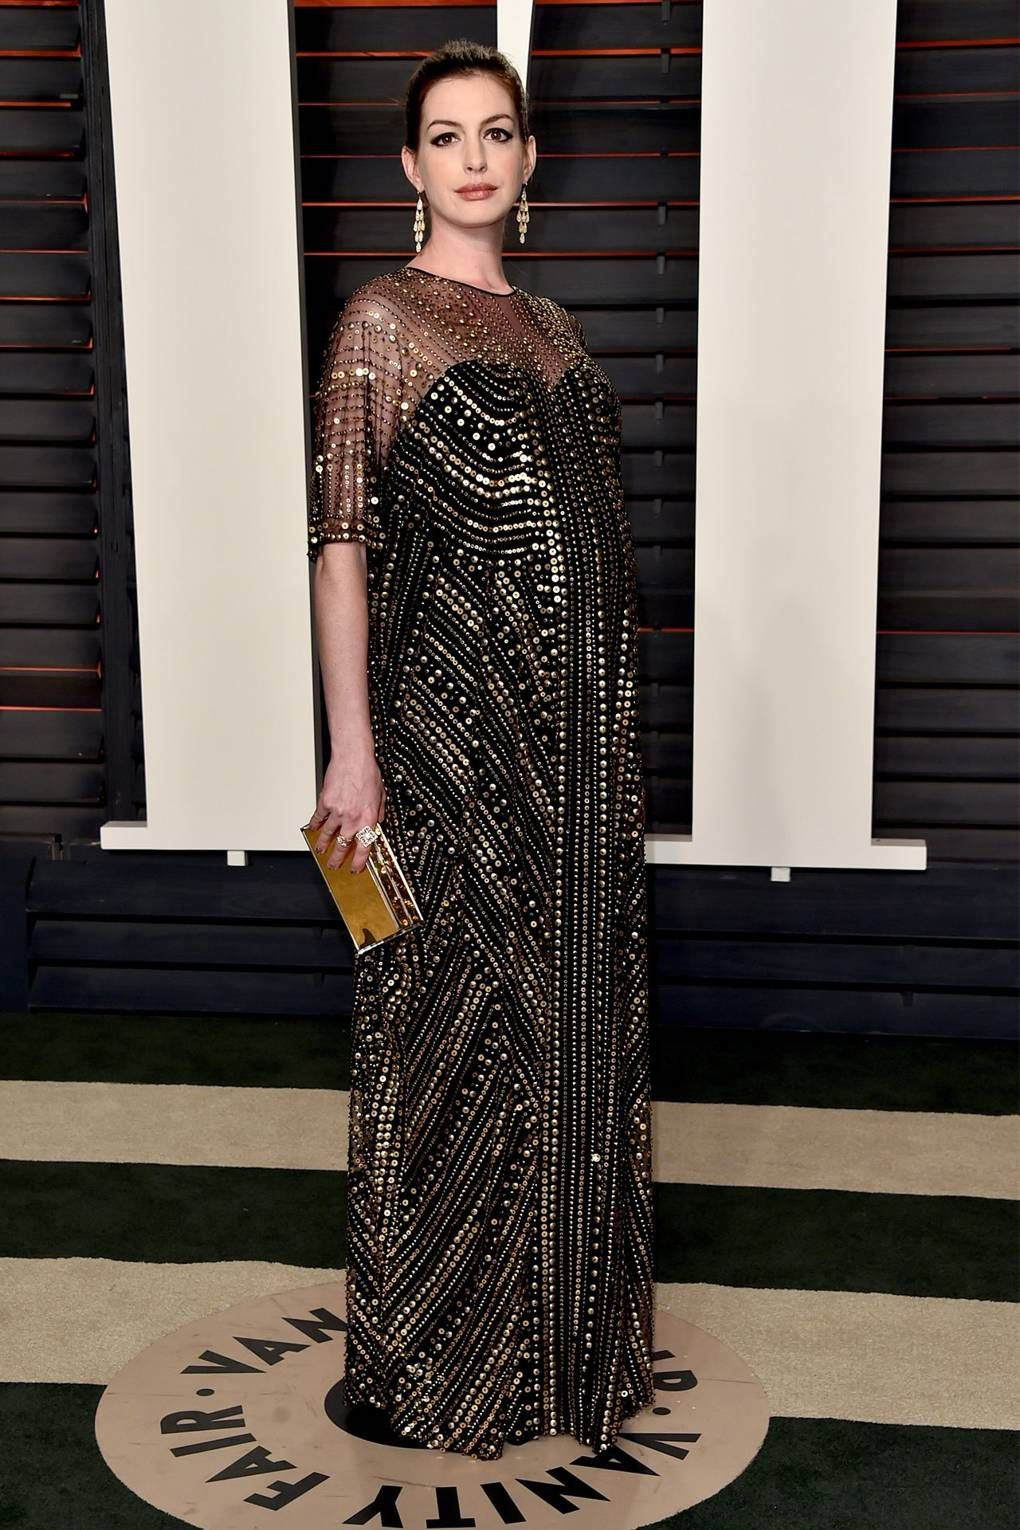 46d287d739ef9 Anne Hathaway in an embellished tunic dress for the [i]Vanity Fair[/i] Oscars  2016 after-party.